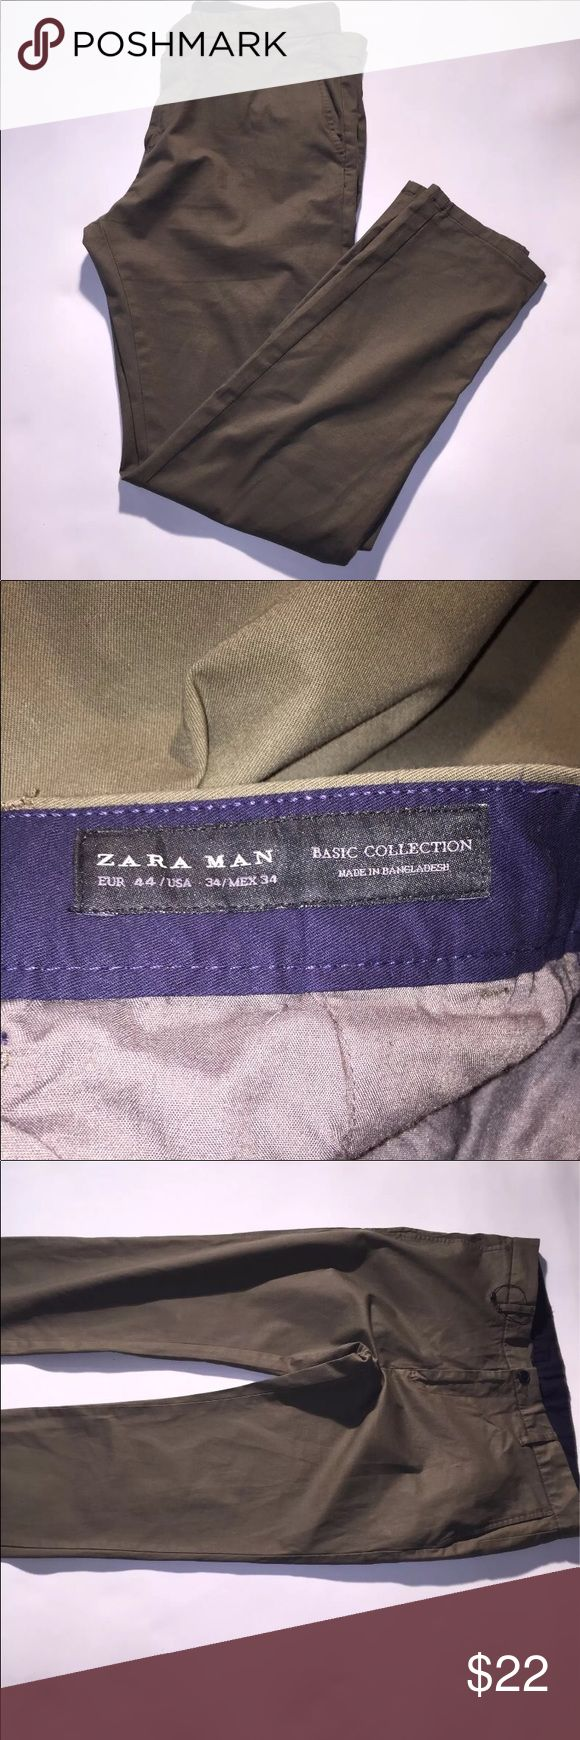 Zara men's pants Zara men's pants in Great condition in a olive green color if you have any questions please feel free to contact me thanks for visiting my page    #fashion #swag #style #stylish #socialenvy #me #swagger #photooftheday #jacket #hair #pants #shirt #handsome #cool #polo #swagg #guy #boy #boys #man #model #tshirt #shoes #sneakers #styles #jeans #fresh #dope #love #zara Zara Pants Chinos & Khakis